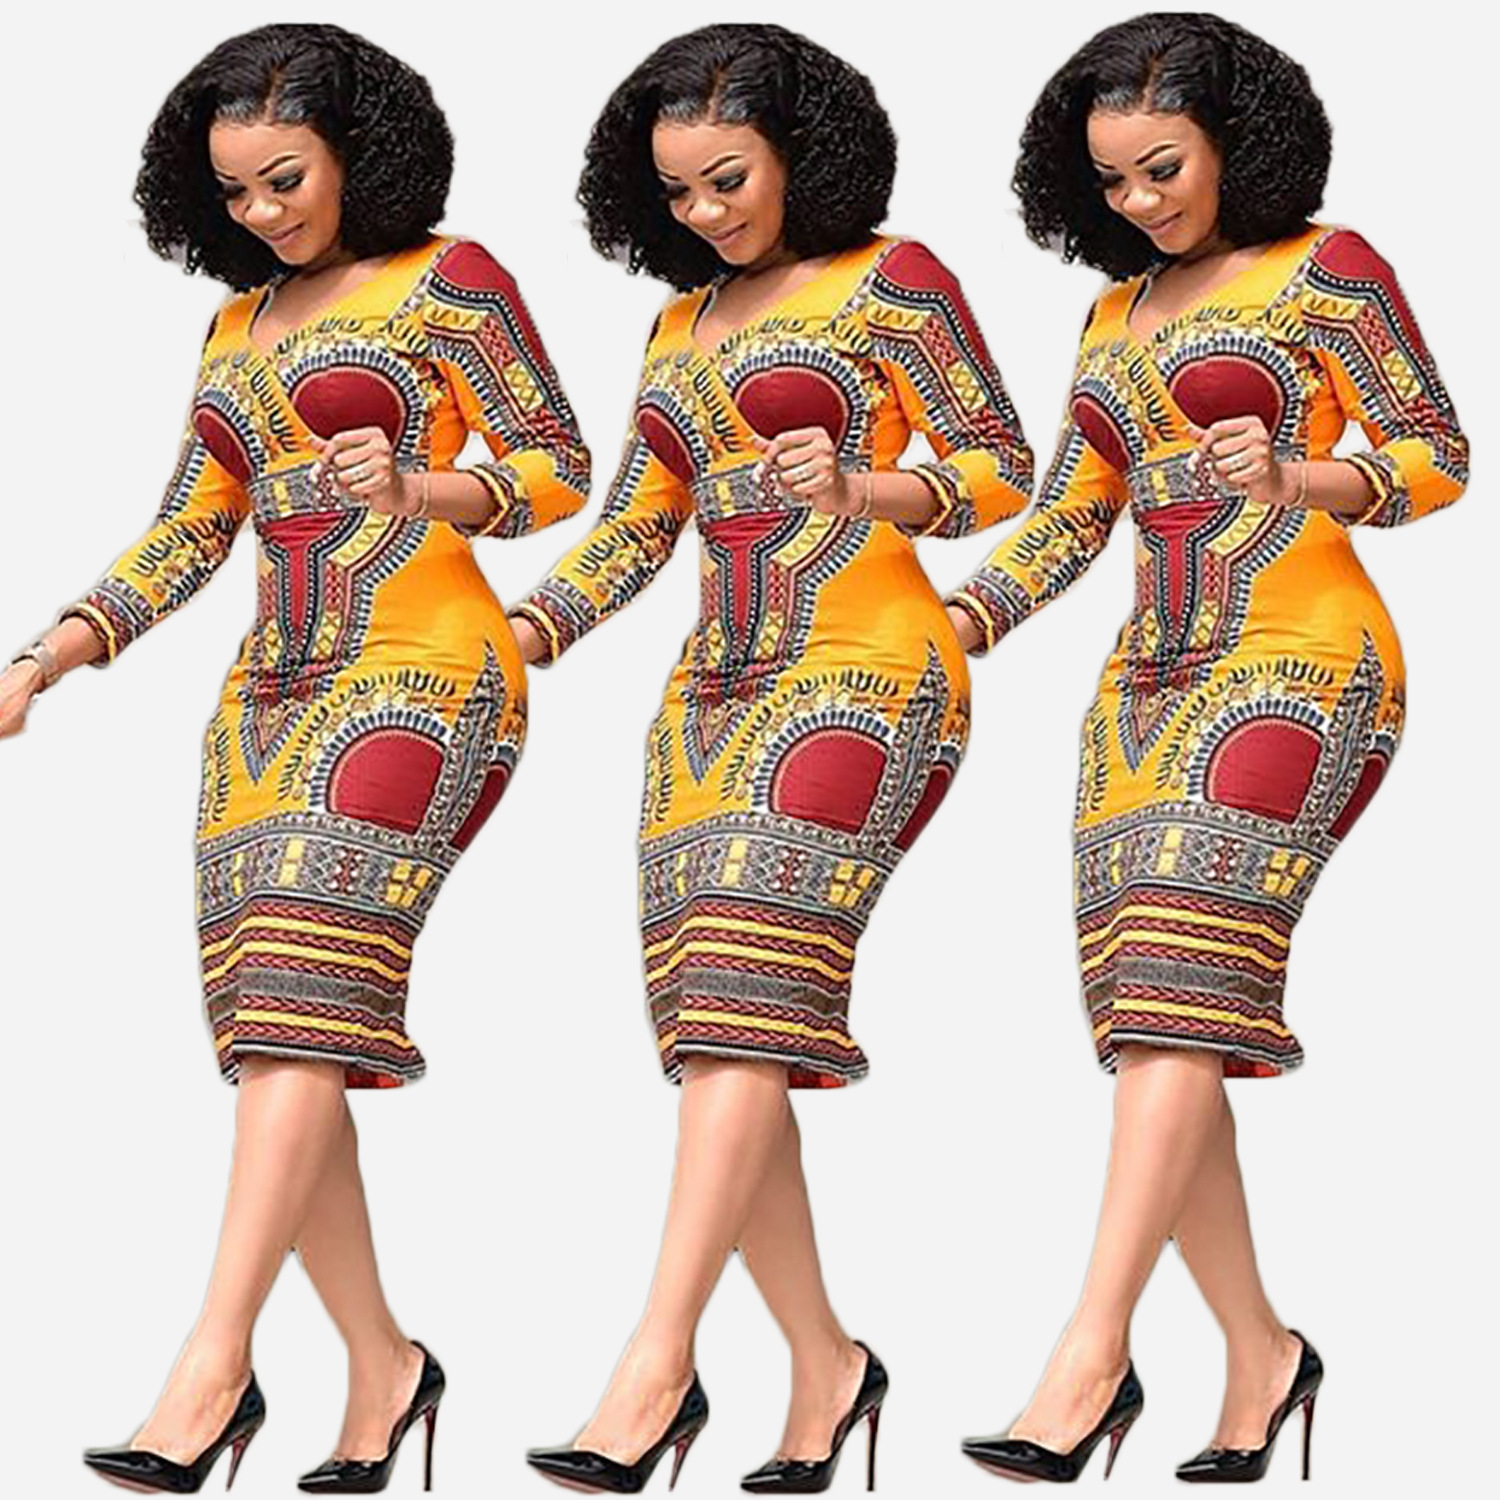 African Clothing New Women Fashion Summer Short Sleeve Dress Casual Deep V-Neck Traditional African Print Party Dresses